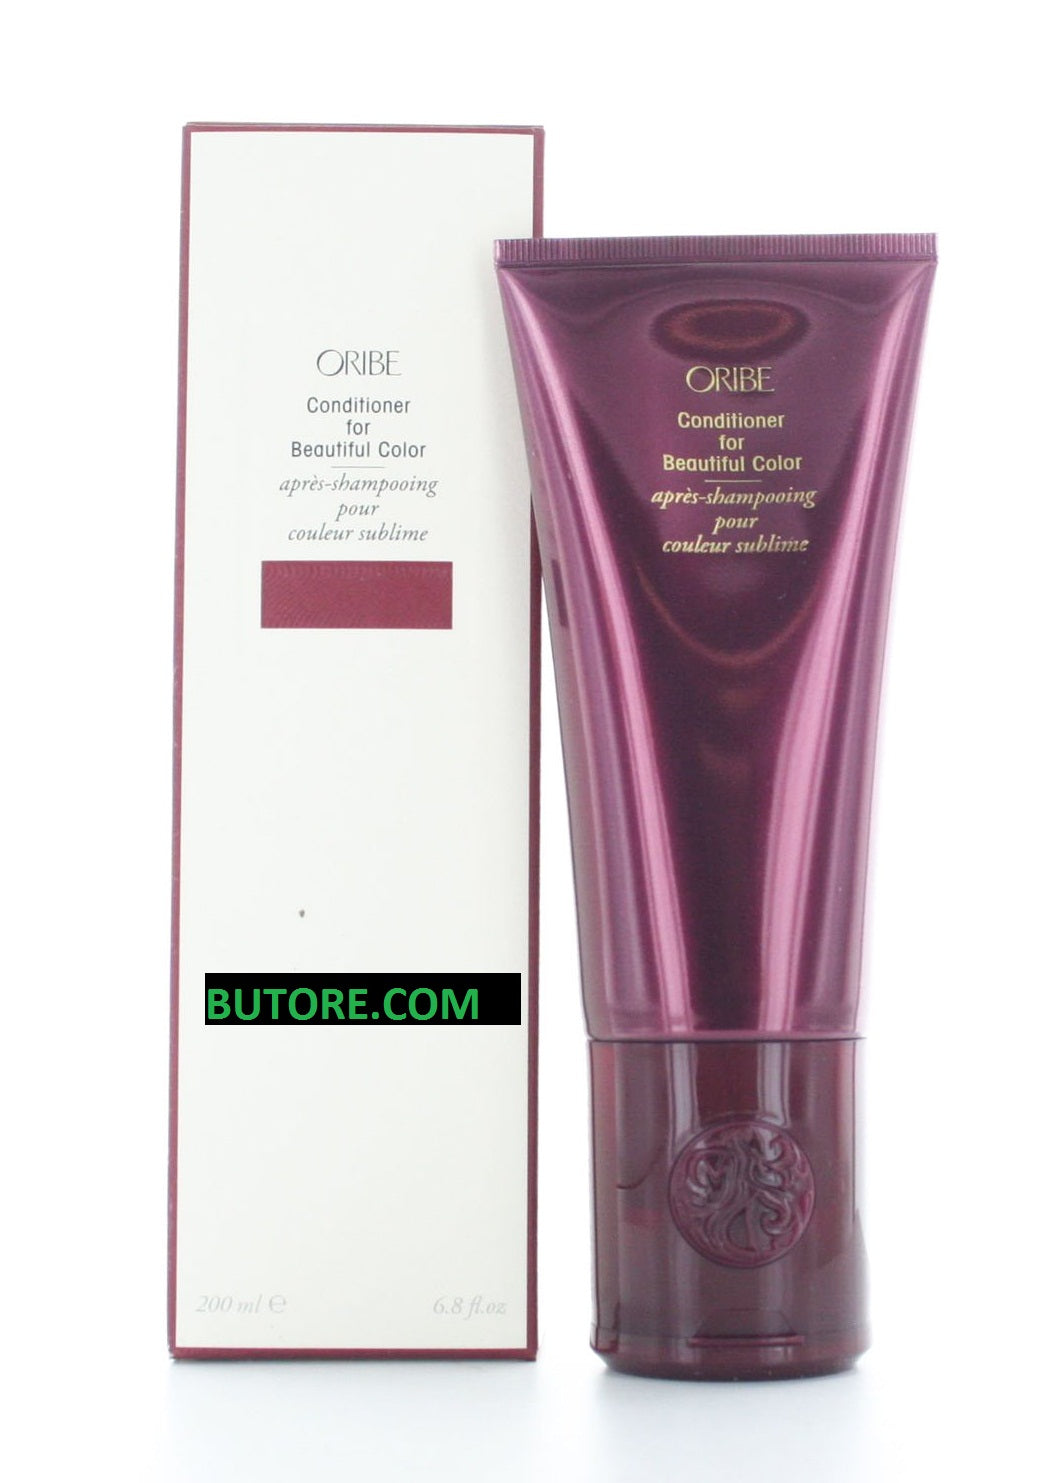 Oribe Conditioner for Beautiful Color 6.8oz